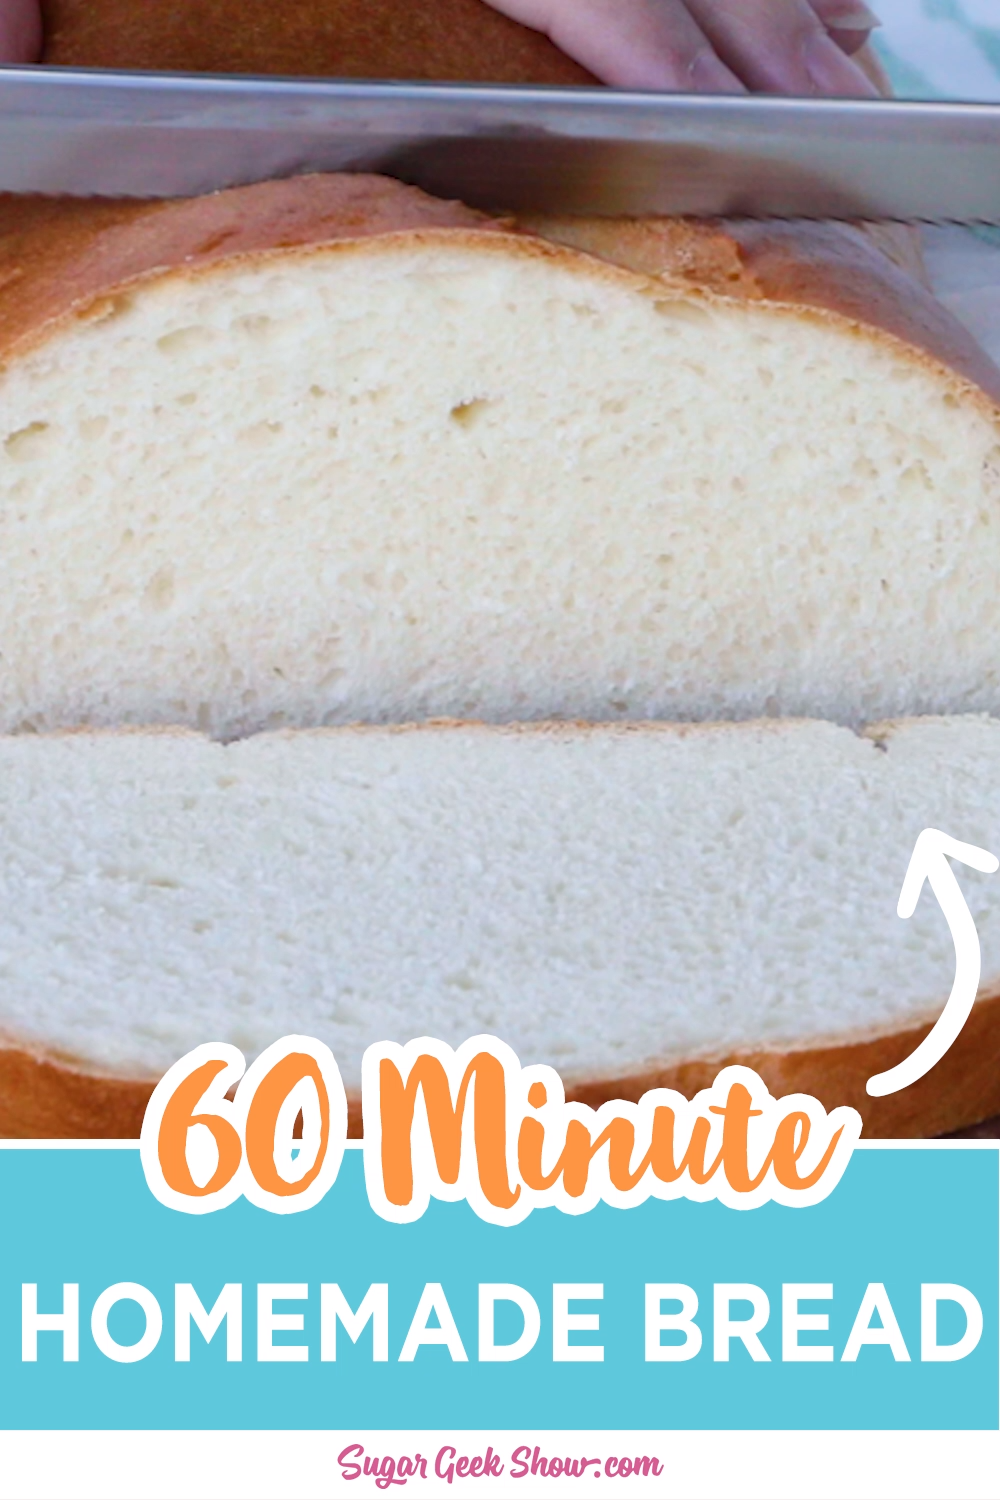 Need bread fast? This soft and fluffy yeast bread only takes 60 minutes to make and is pretty much the most amazing bread I've ever had. No special pans or bread machines. You won't believe how easy it is to make your own homemade bread.  #homemade #bread #yeast #baking